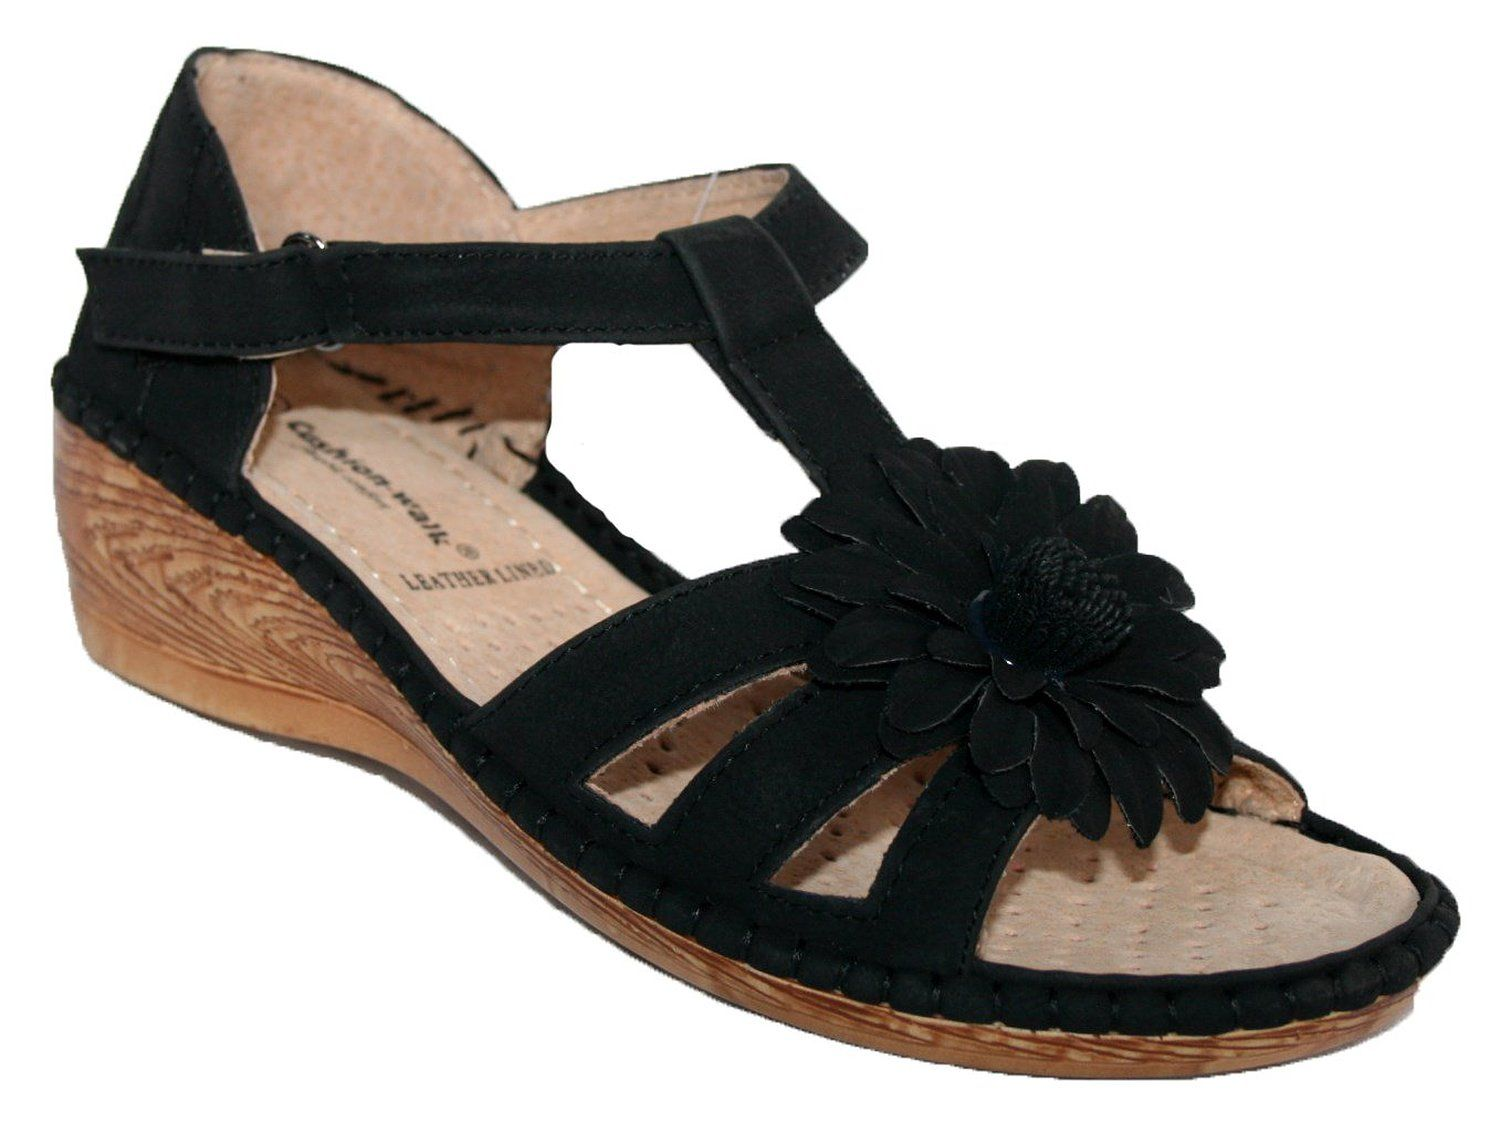 0e3963ef2ba0 LADIES WEDGE HEEL SUMMER SANDAL WITH FLOWER BOW TRIM  Amazon.co.uk  Shoes    Bags